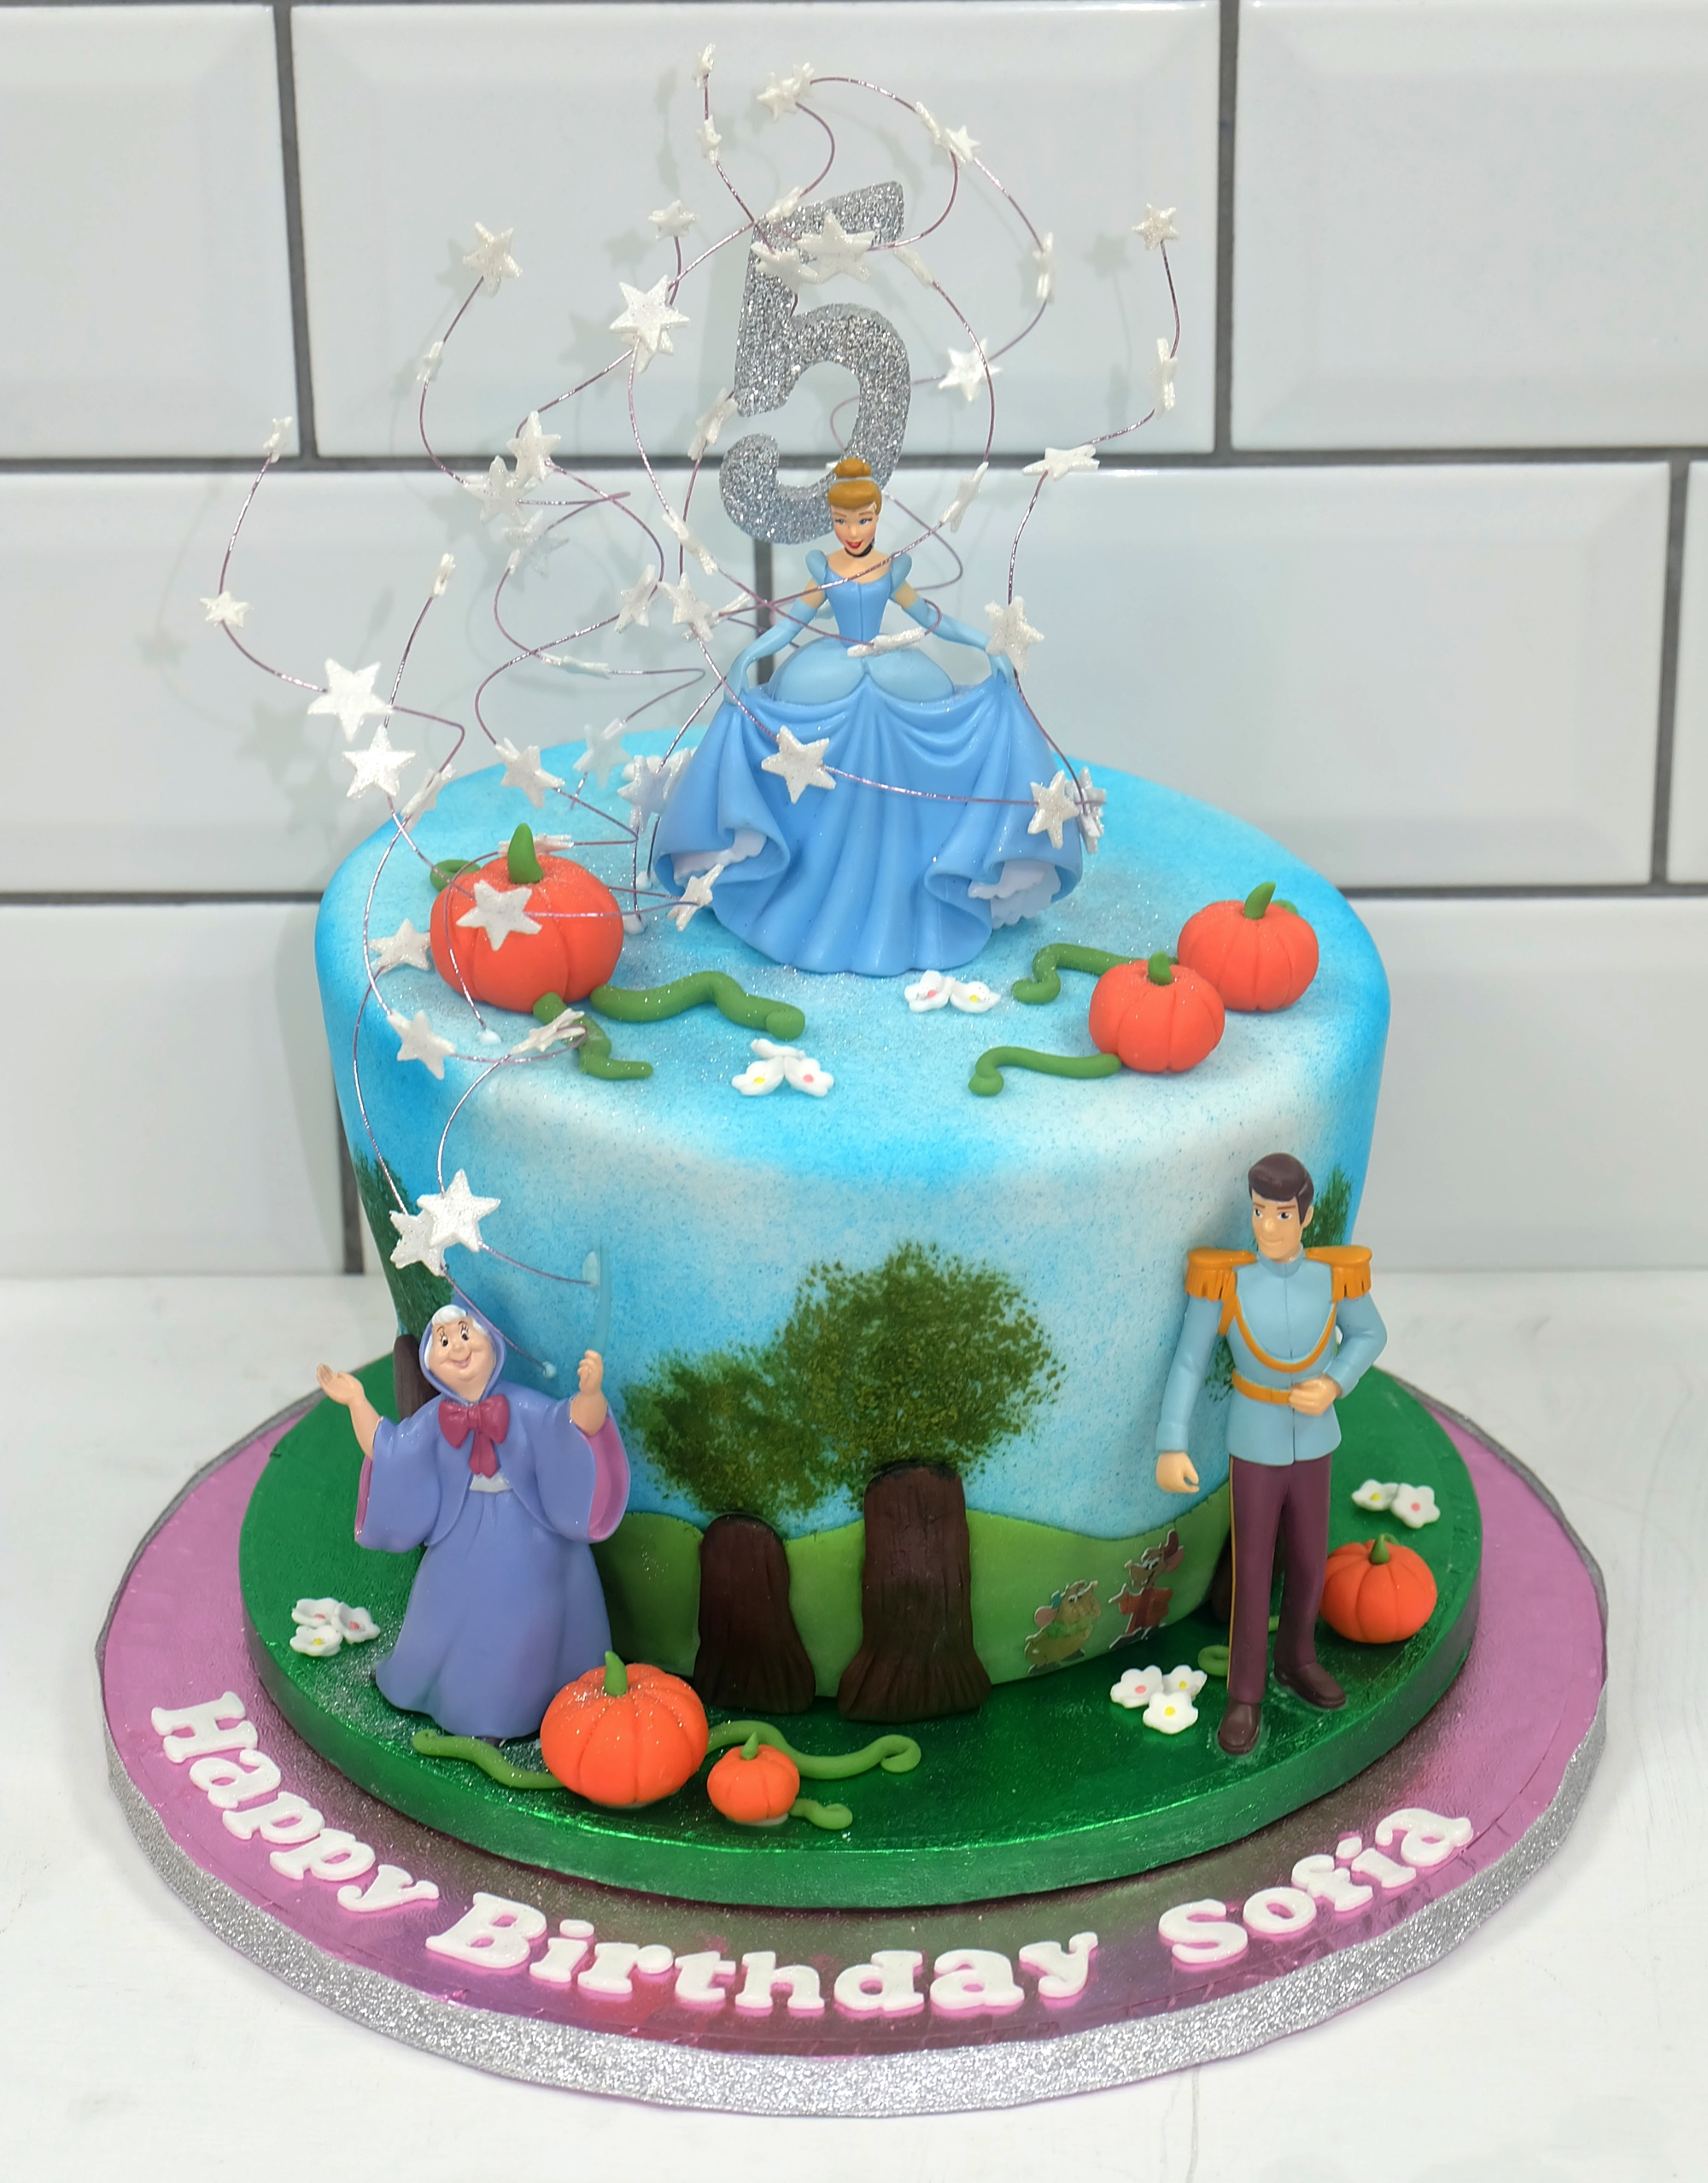 Cinderella%20Birthday%20Cake_edited